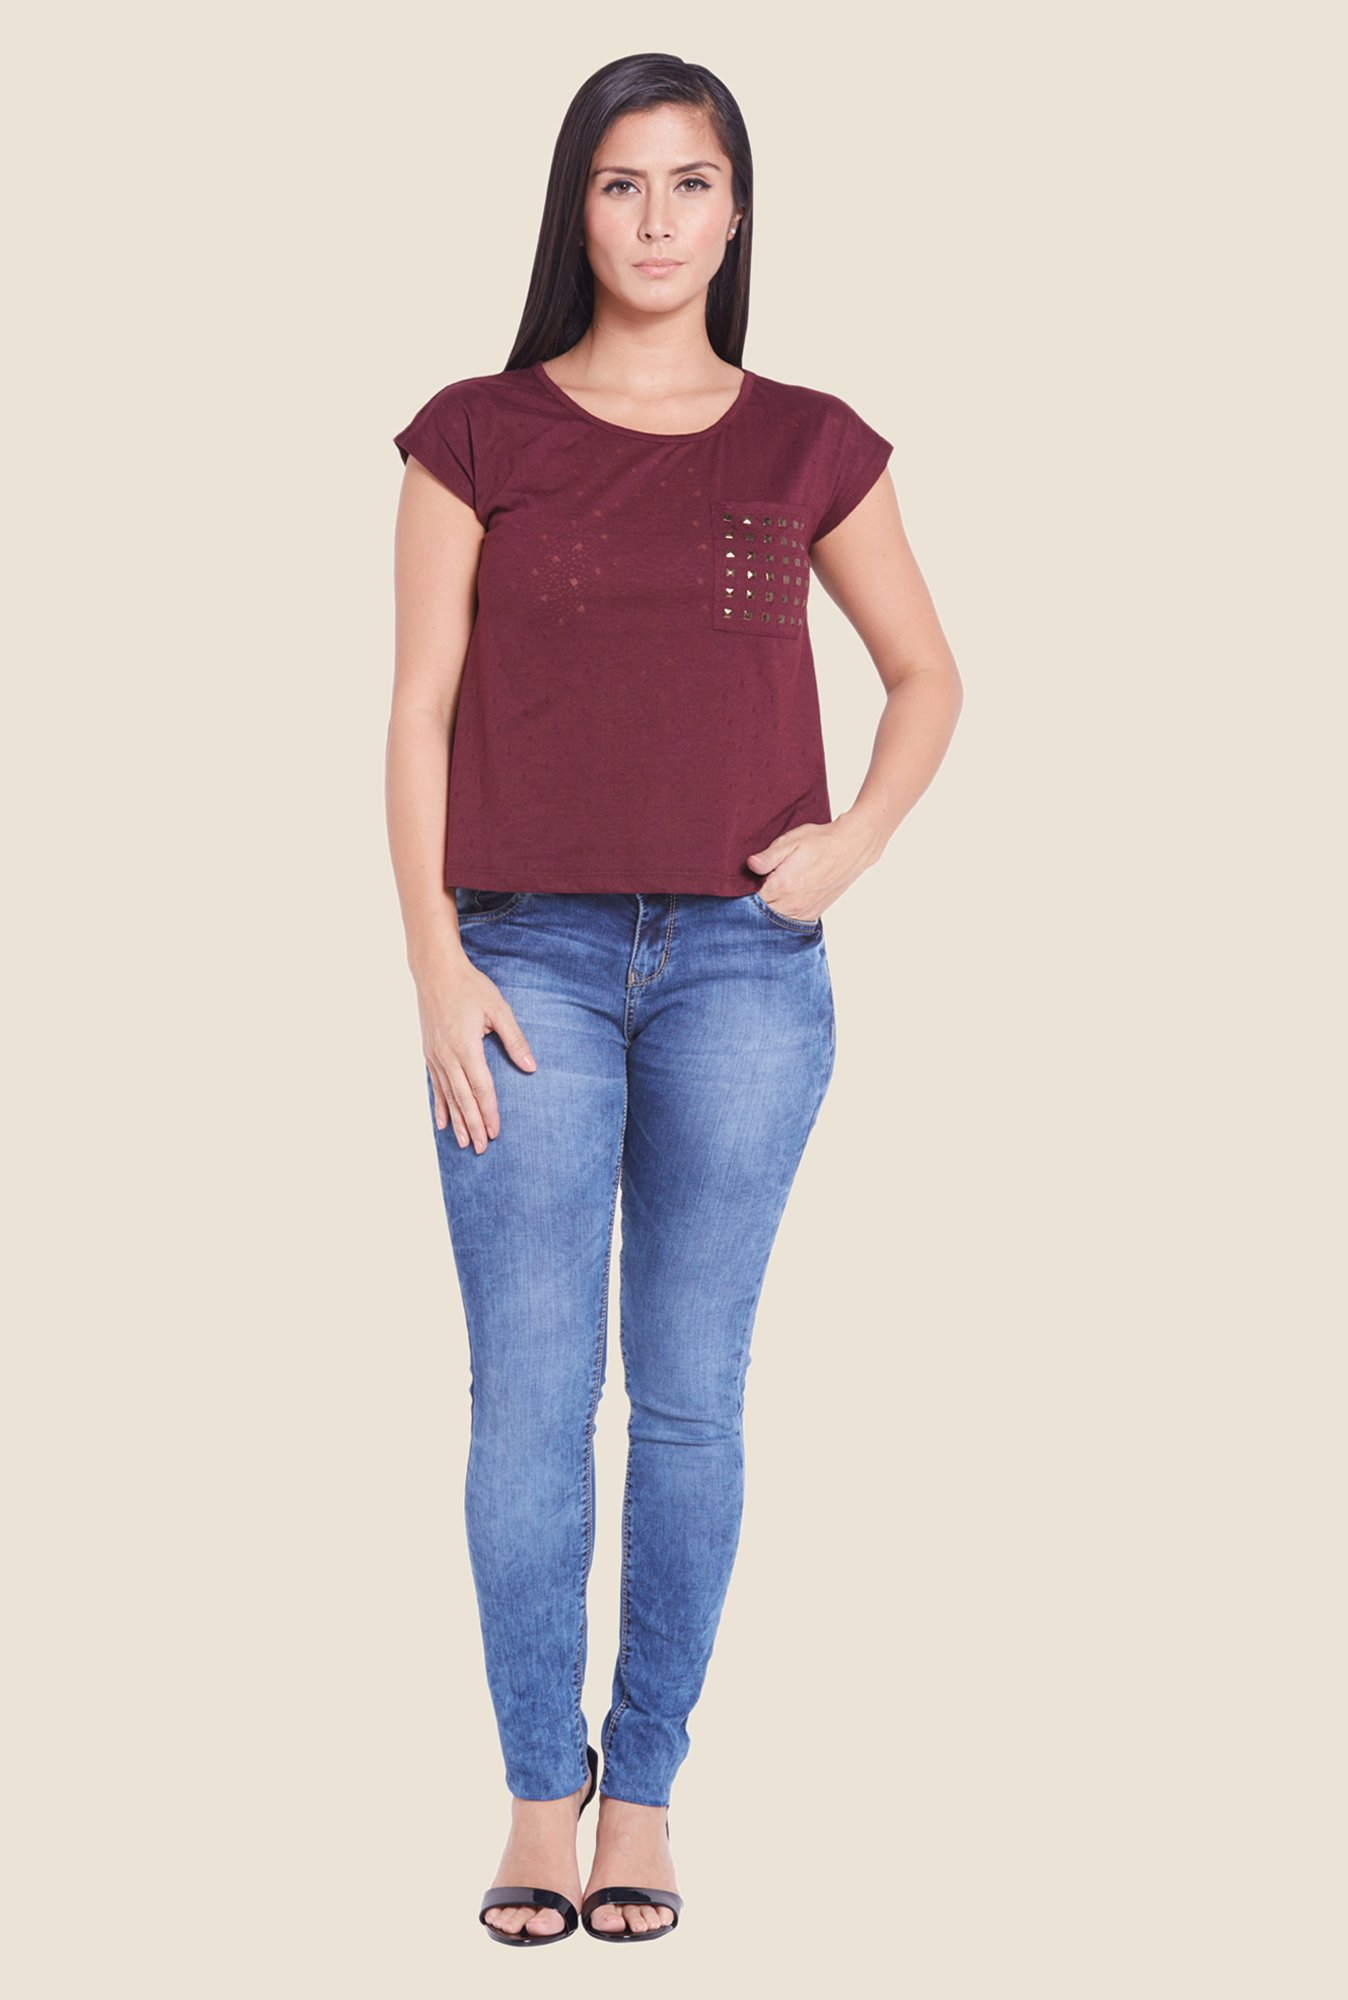 Globus Burgundy Solid Studded Top